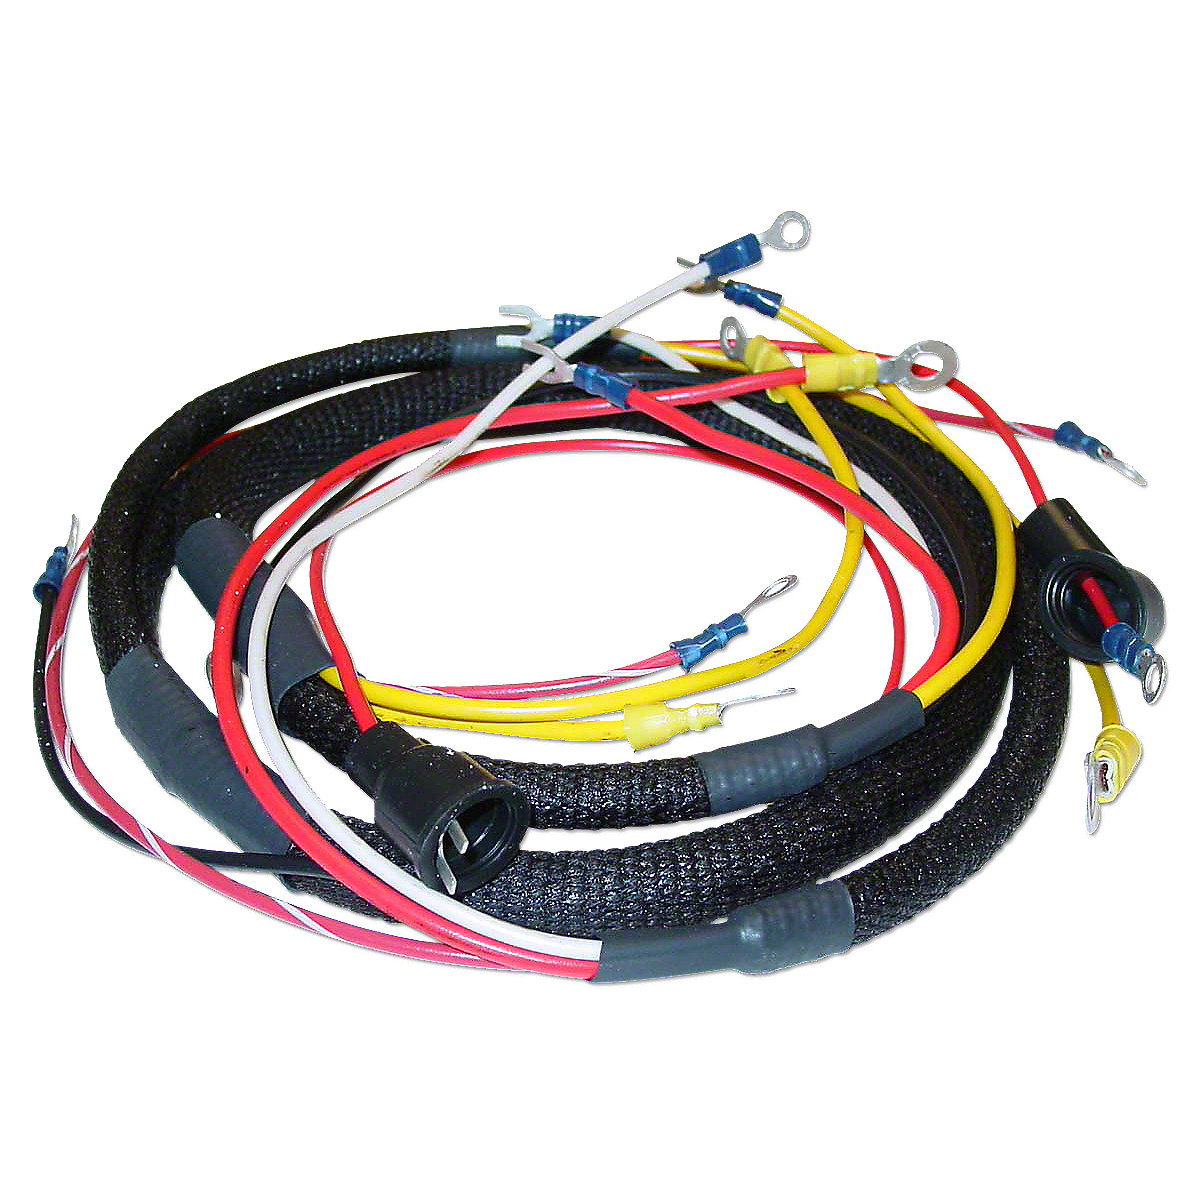 ABC077 - Wiring Harness - Main Harness on